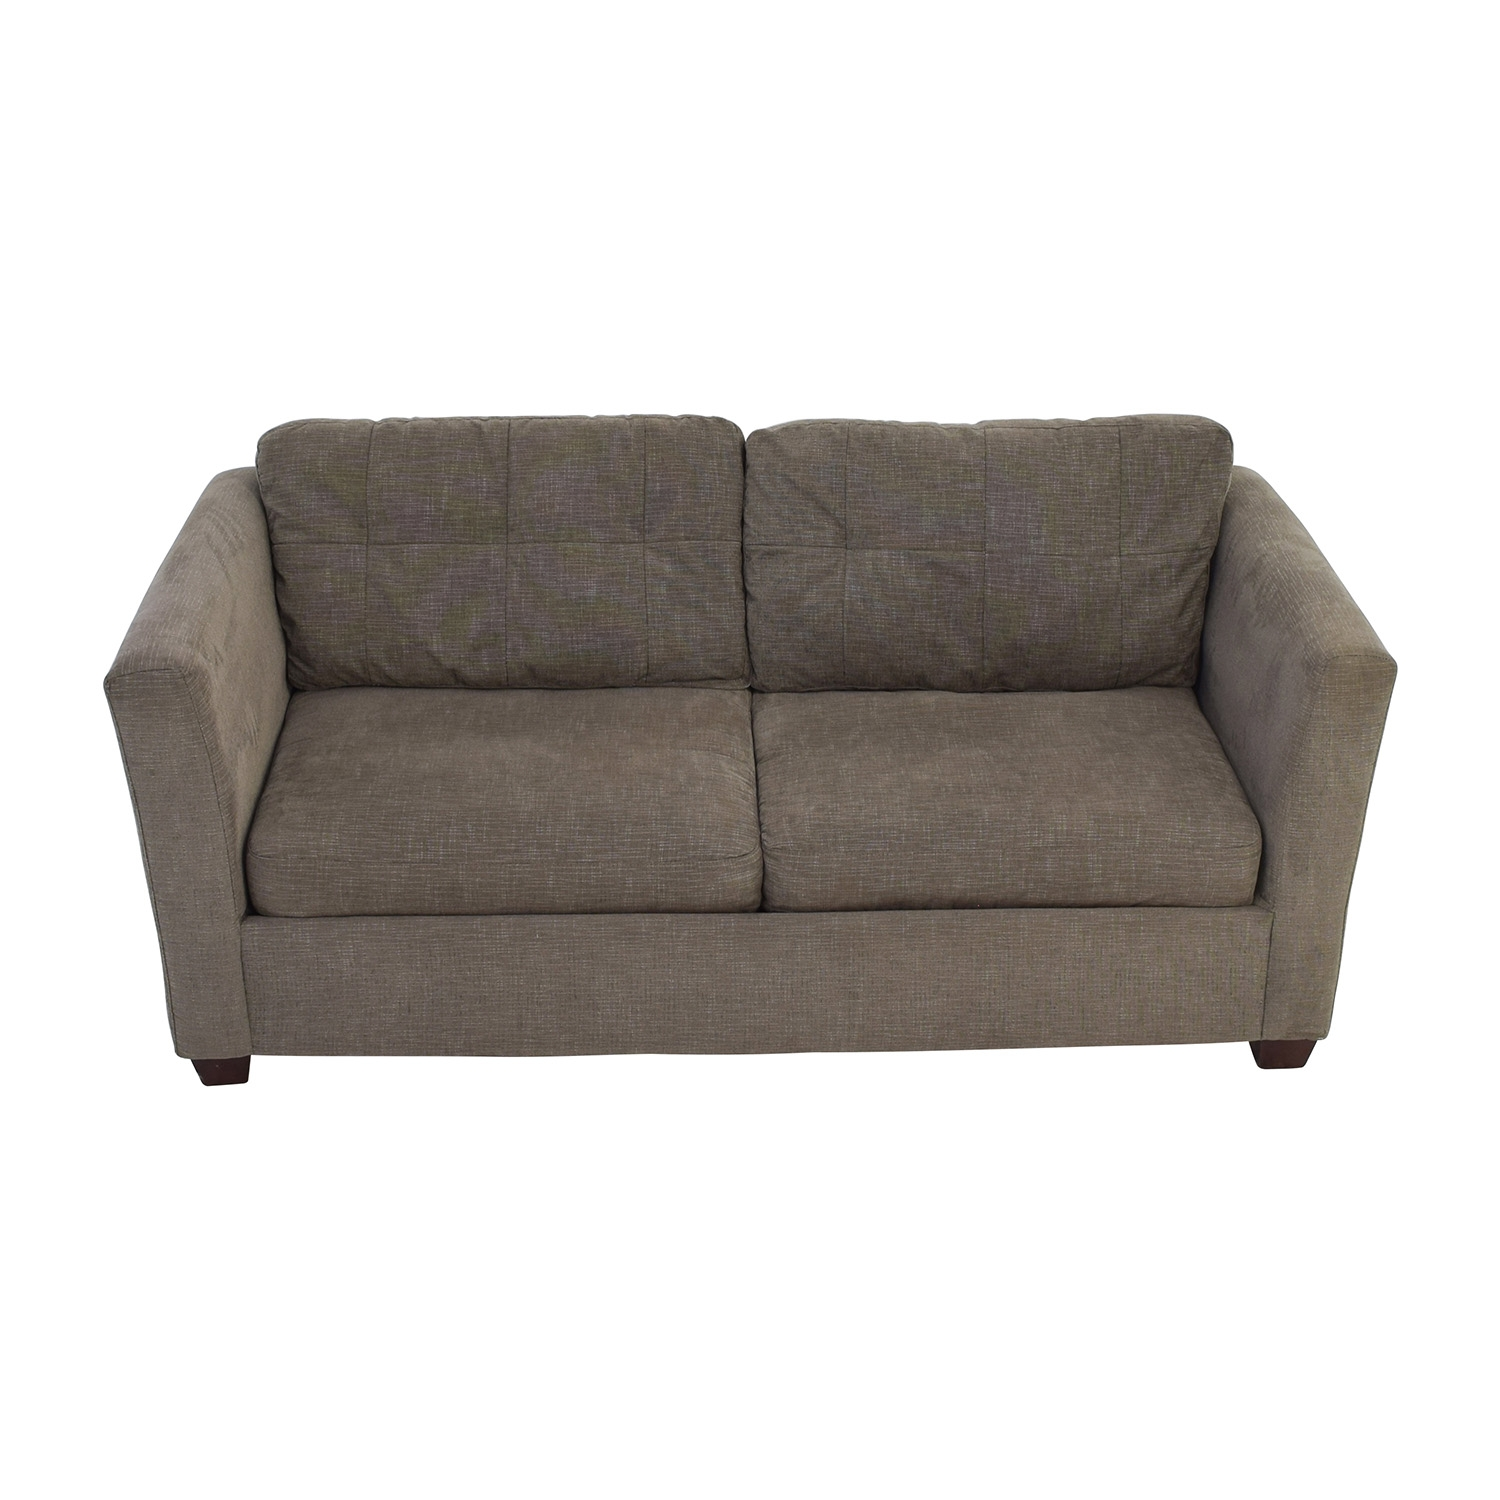 58 Off Bauhaus Bauhaus Grey Queen Sleeper Sofa Sofas Pertaining To Bauhaus Sleeper Sofa (#1 of 12)